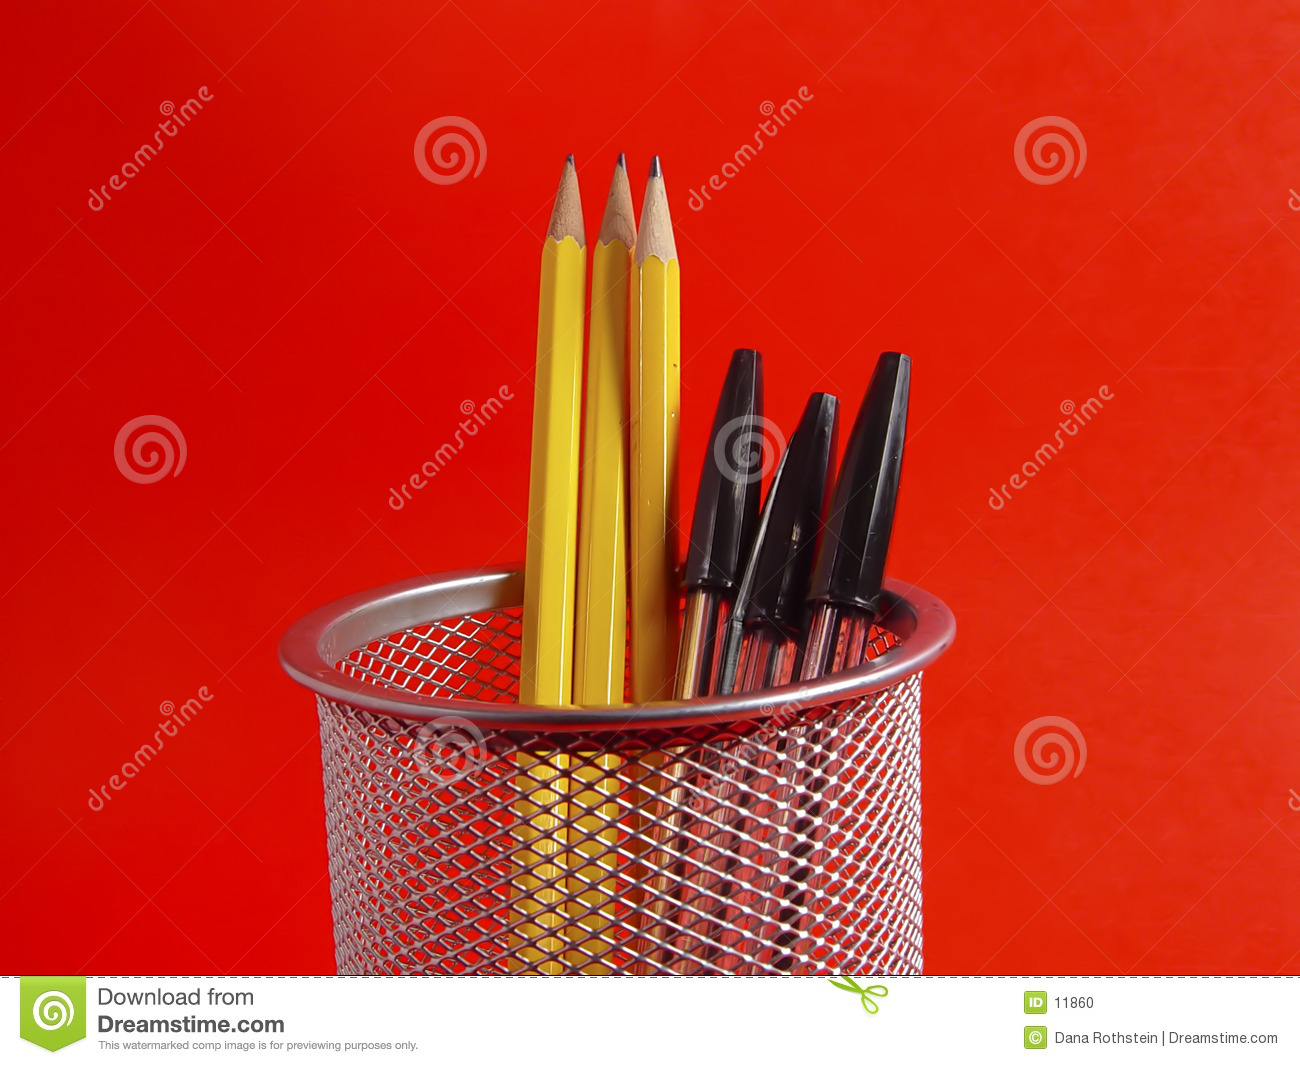 Pencil Holder on Red